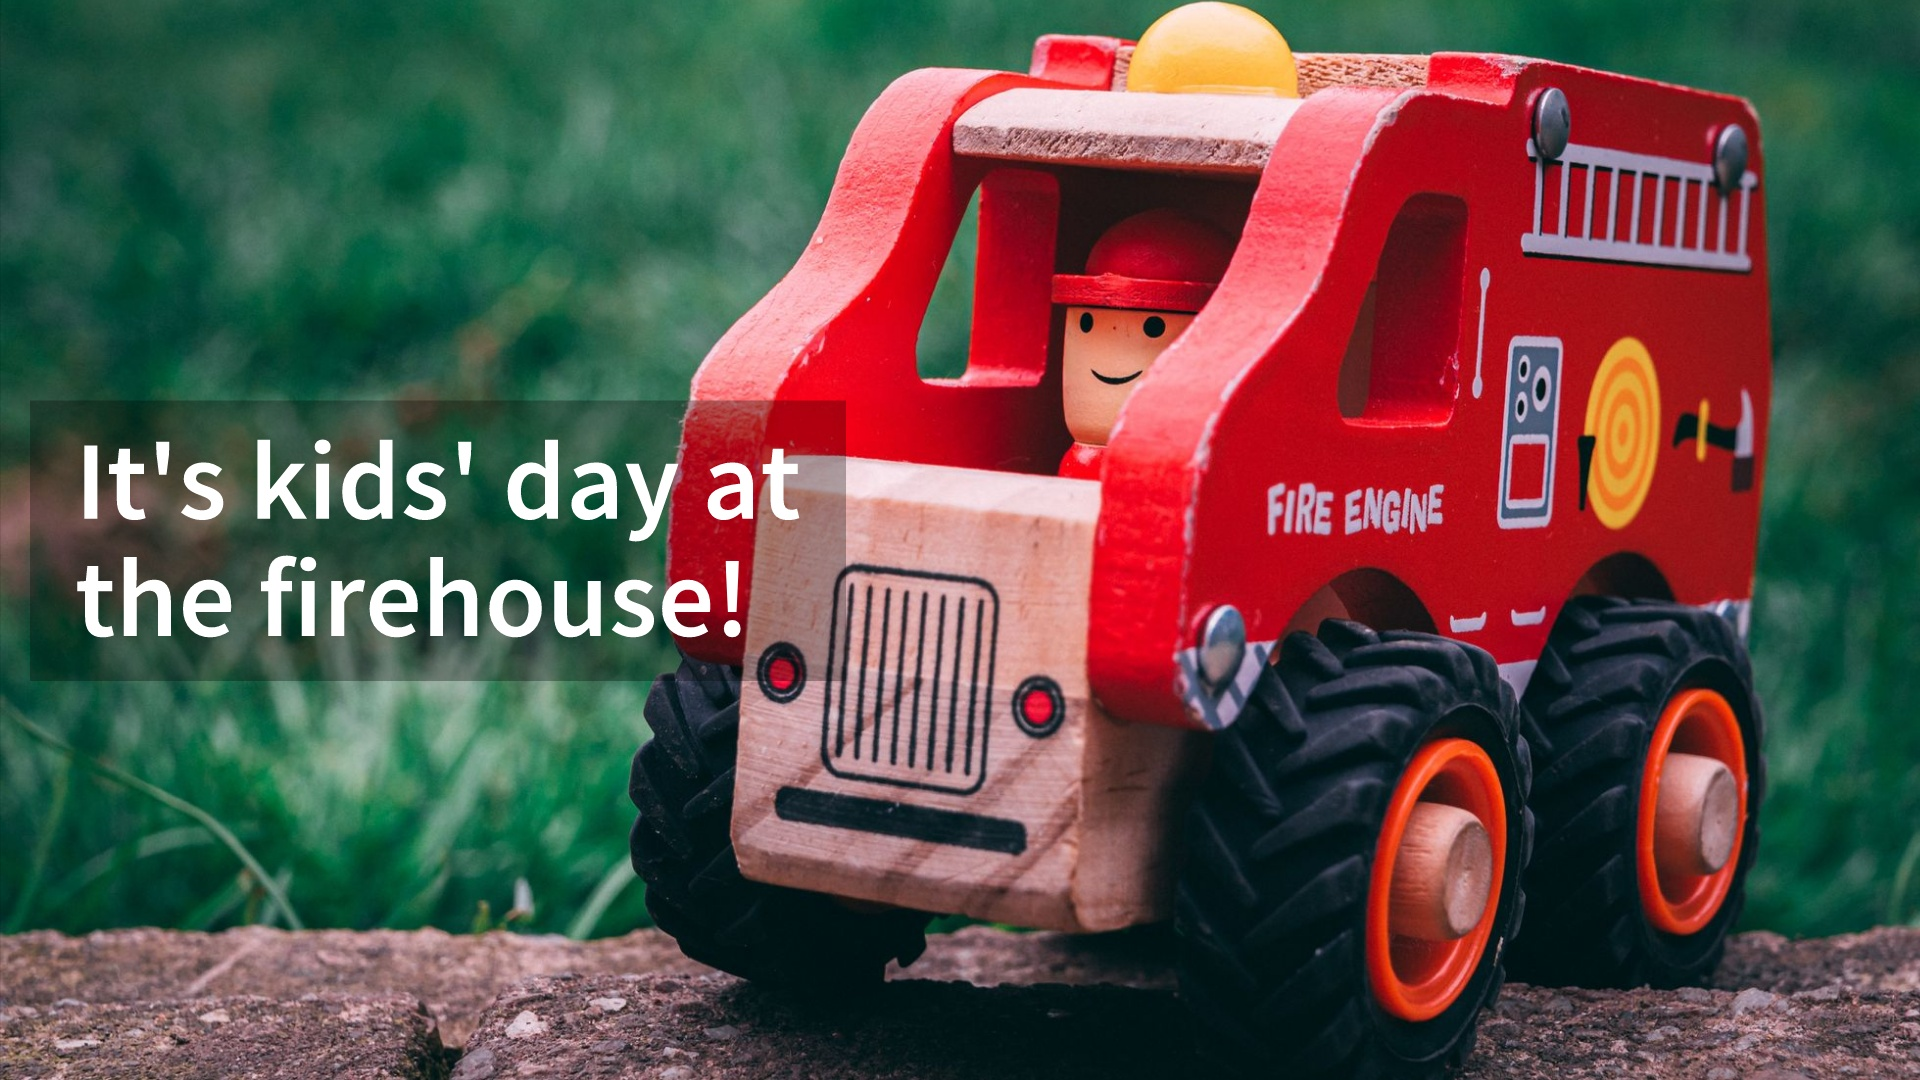 Child's fire truck toy.